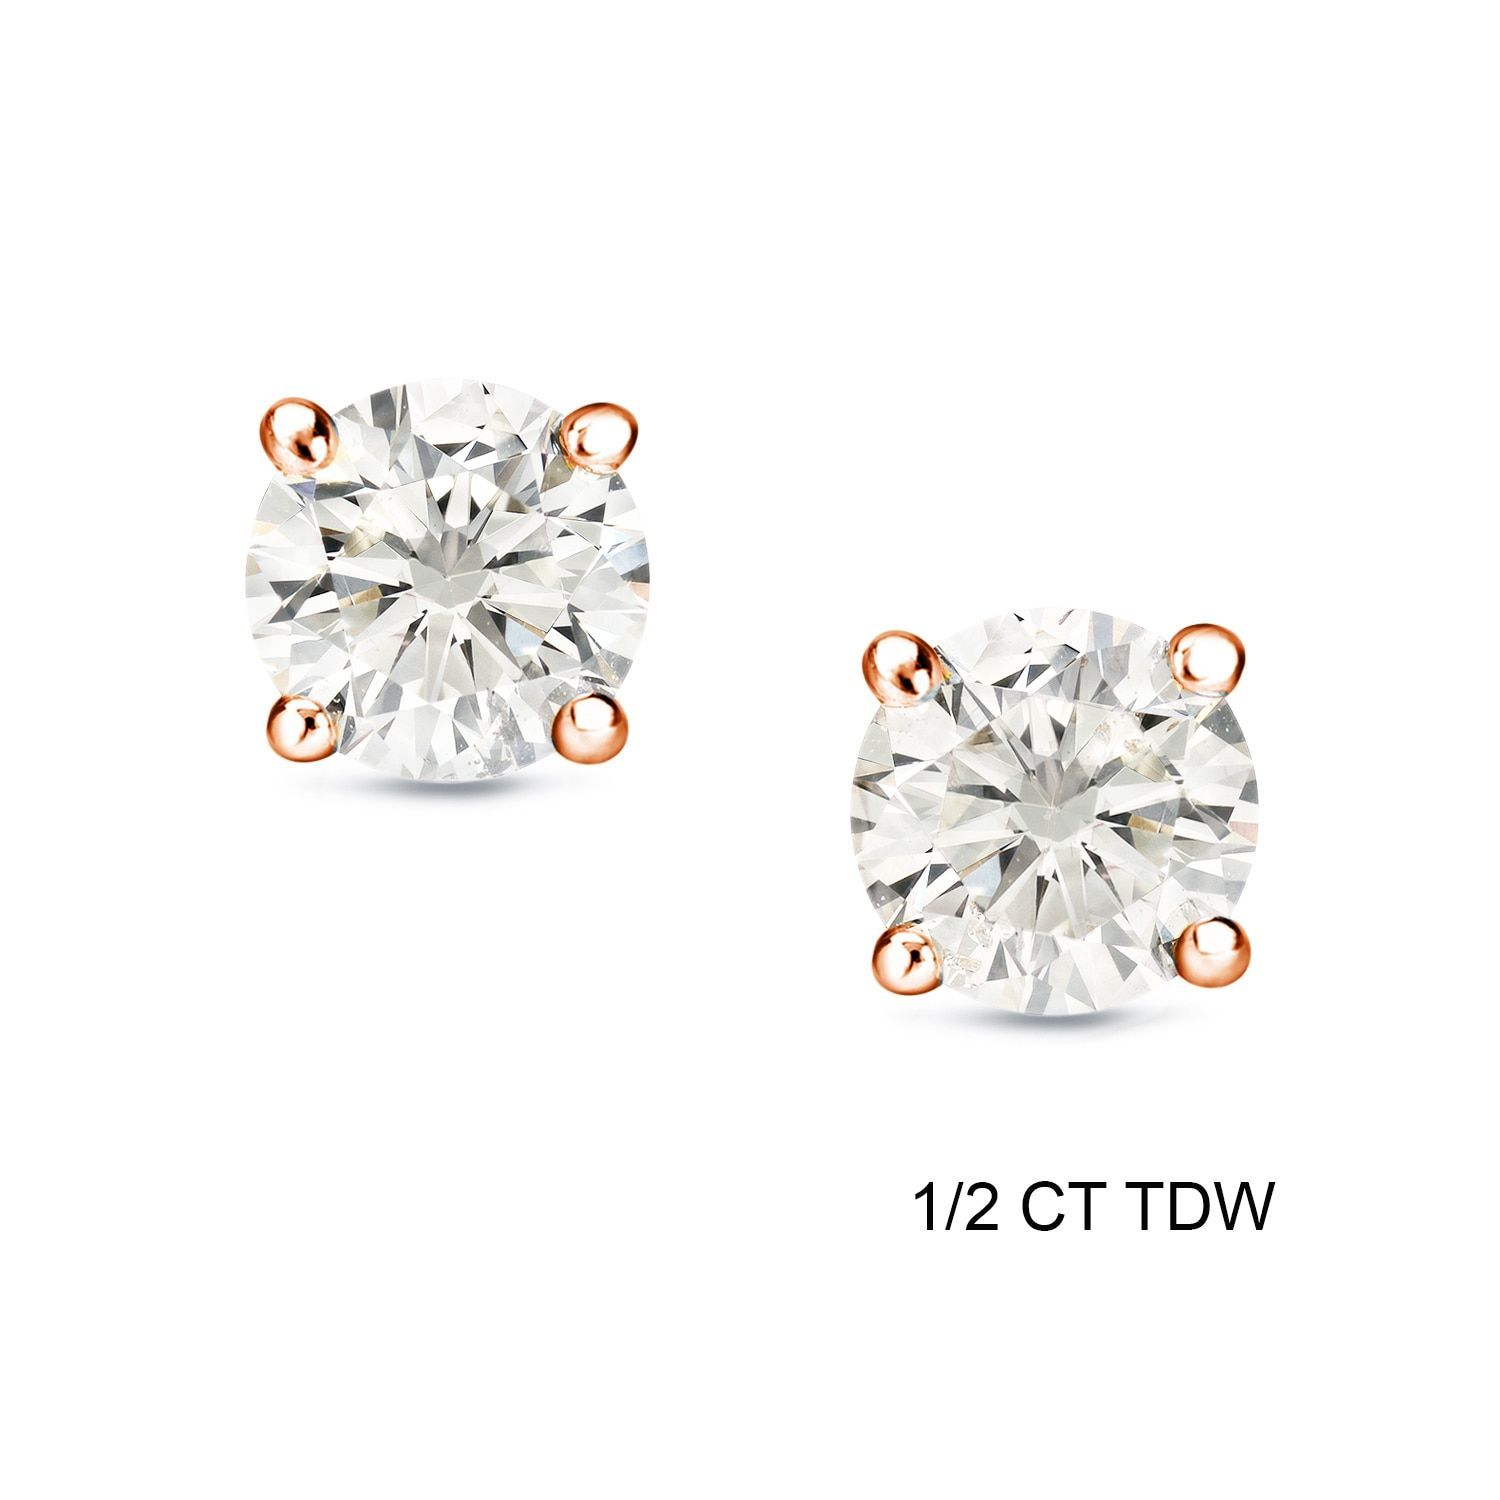 Nordstrom 8ct tw Cubic Zirconia Stud Earrings basic inexpe